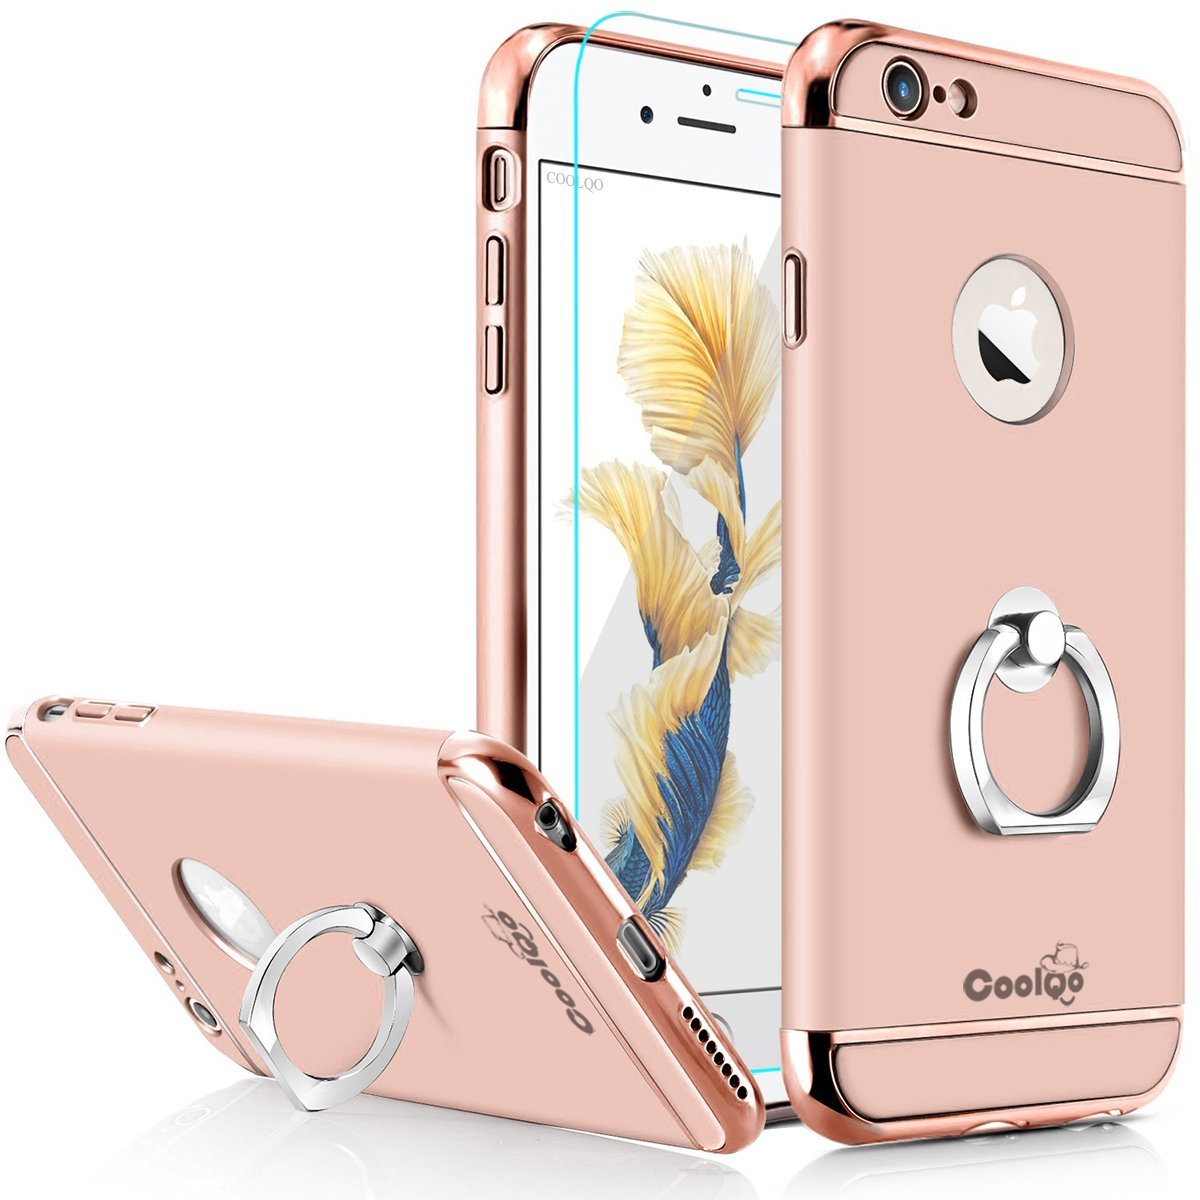 Cheap Rose Gold Iphone 5 Skin Find Deals On Case 6 6s Matte Full Protective Hard For Golden Get Quotations Plus Coolqo Ultra Thin 3in1 Pc